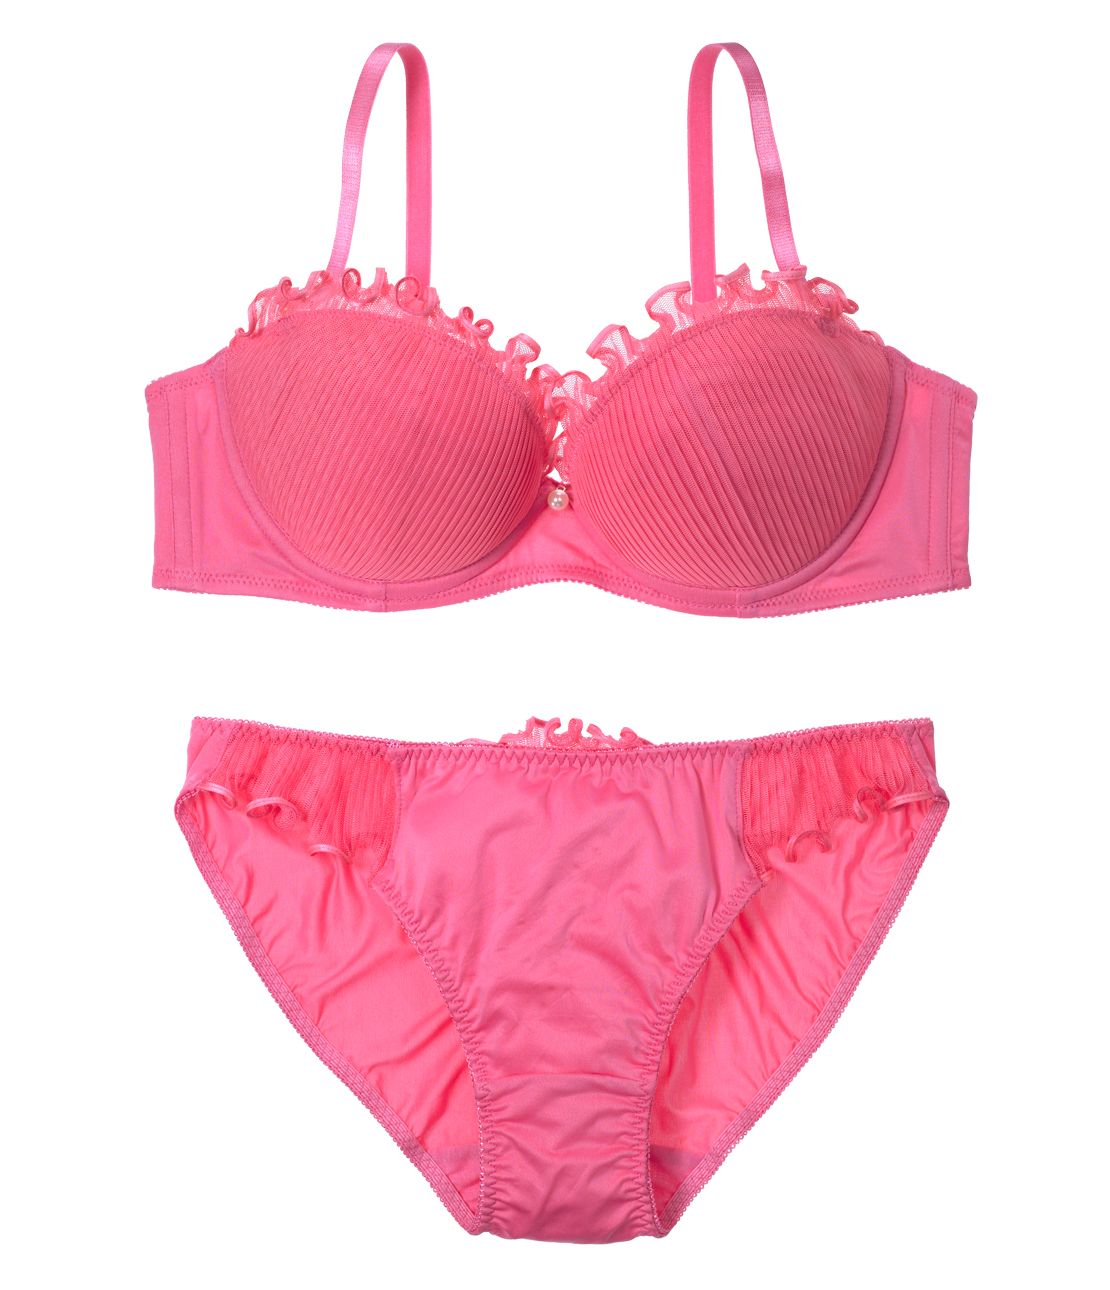 YM Phoebe Strapless set